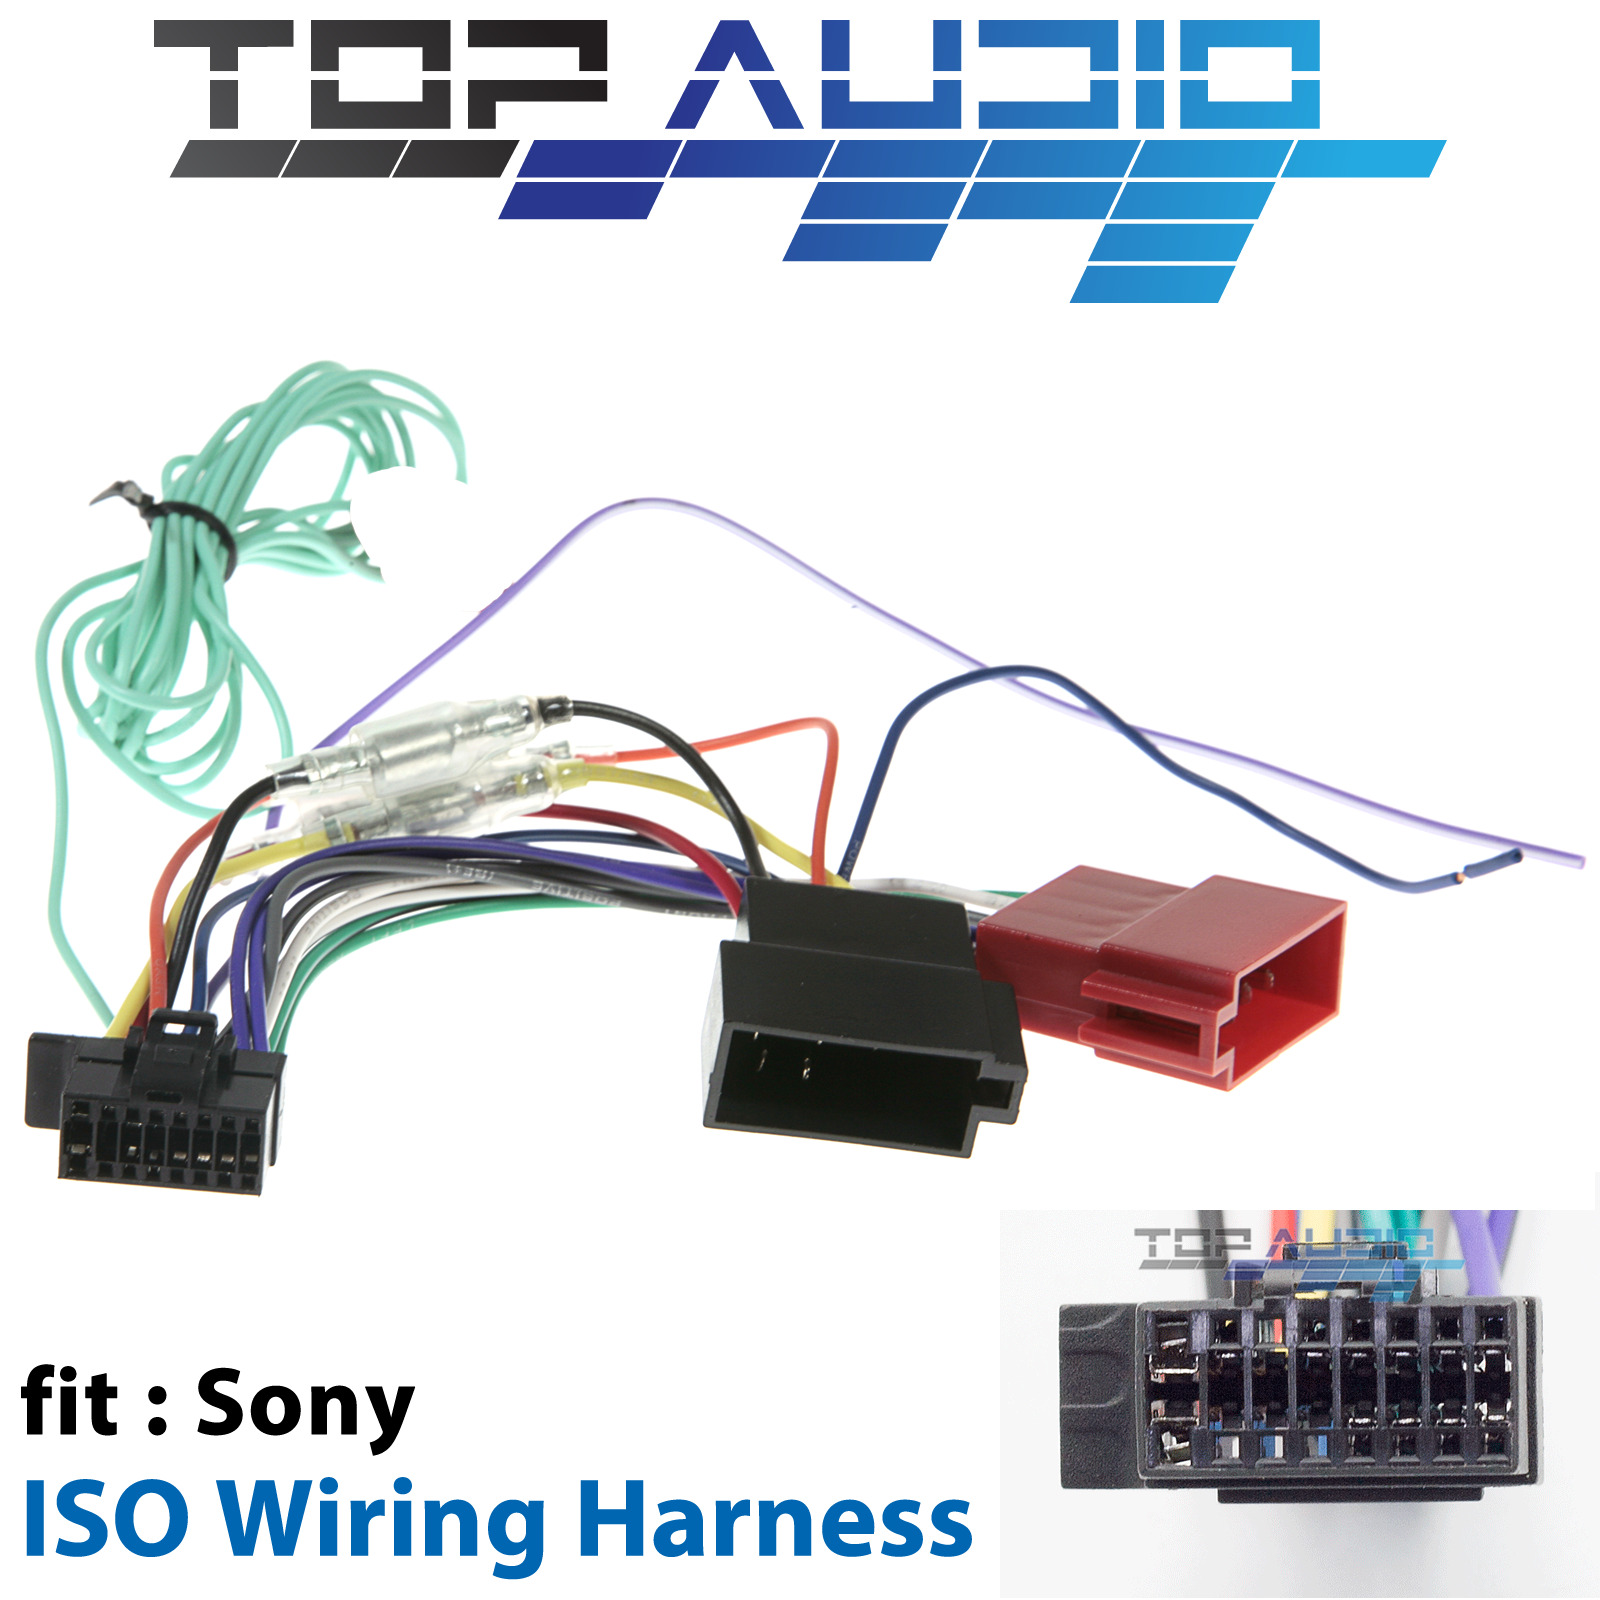 Fit Sony Xav Ax100 Ax200 Iso Wiring Harness Cable Lead Loom Wire Triton 1 Of 4only 5 Available